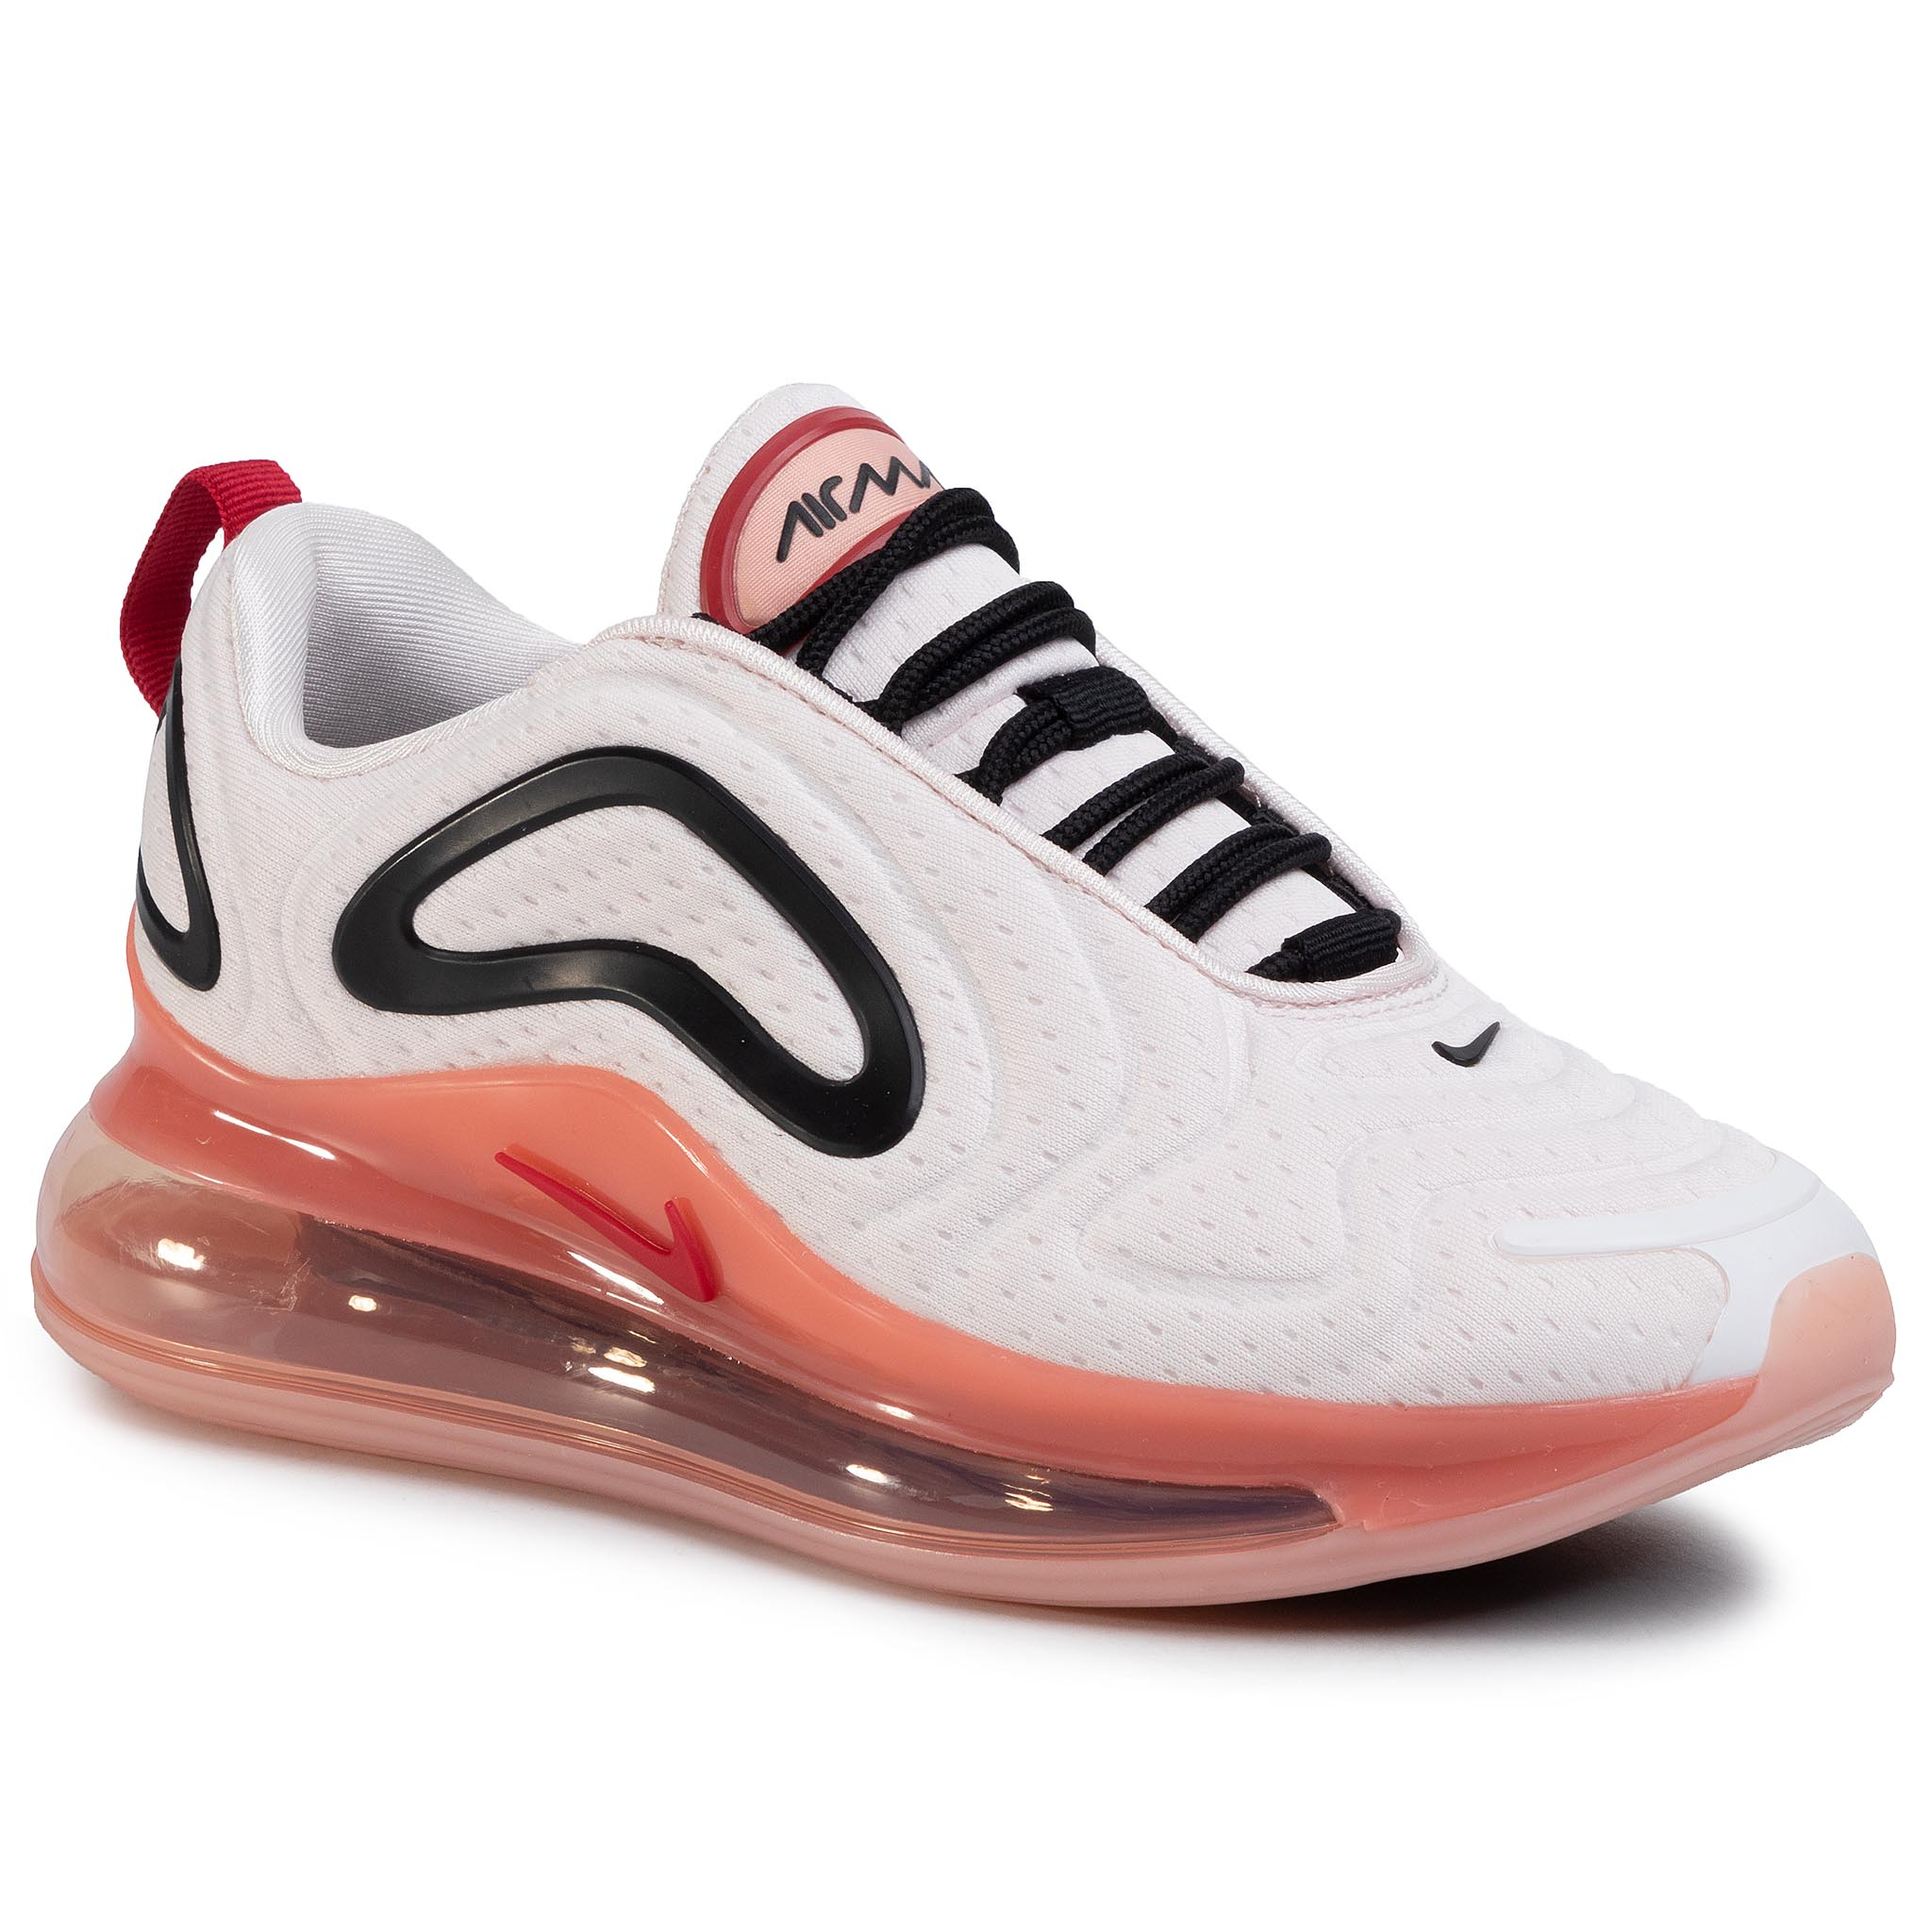 Cipő NIKE Air Max 720 Air Max 720 AR9293 602 Light Soft PinkGym Red